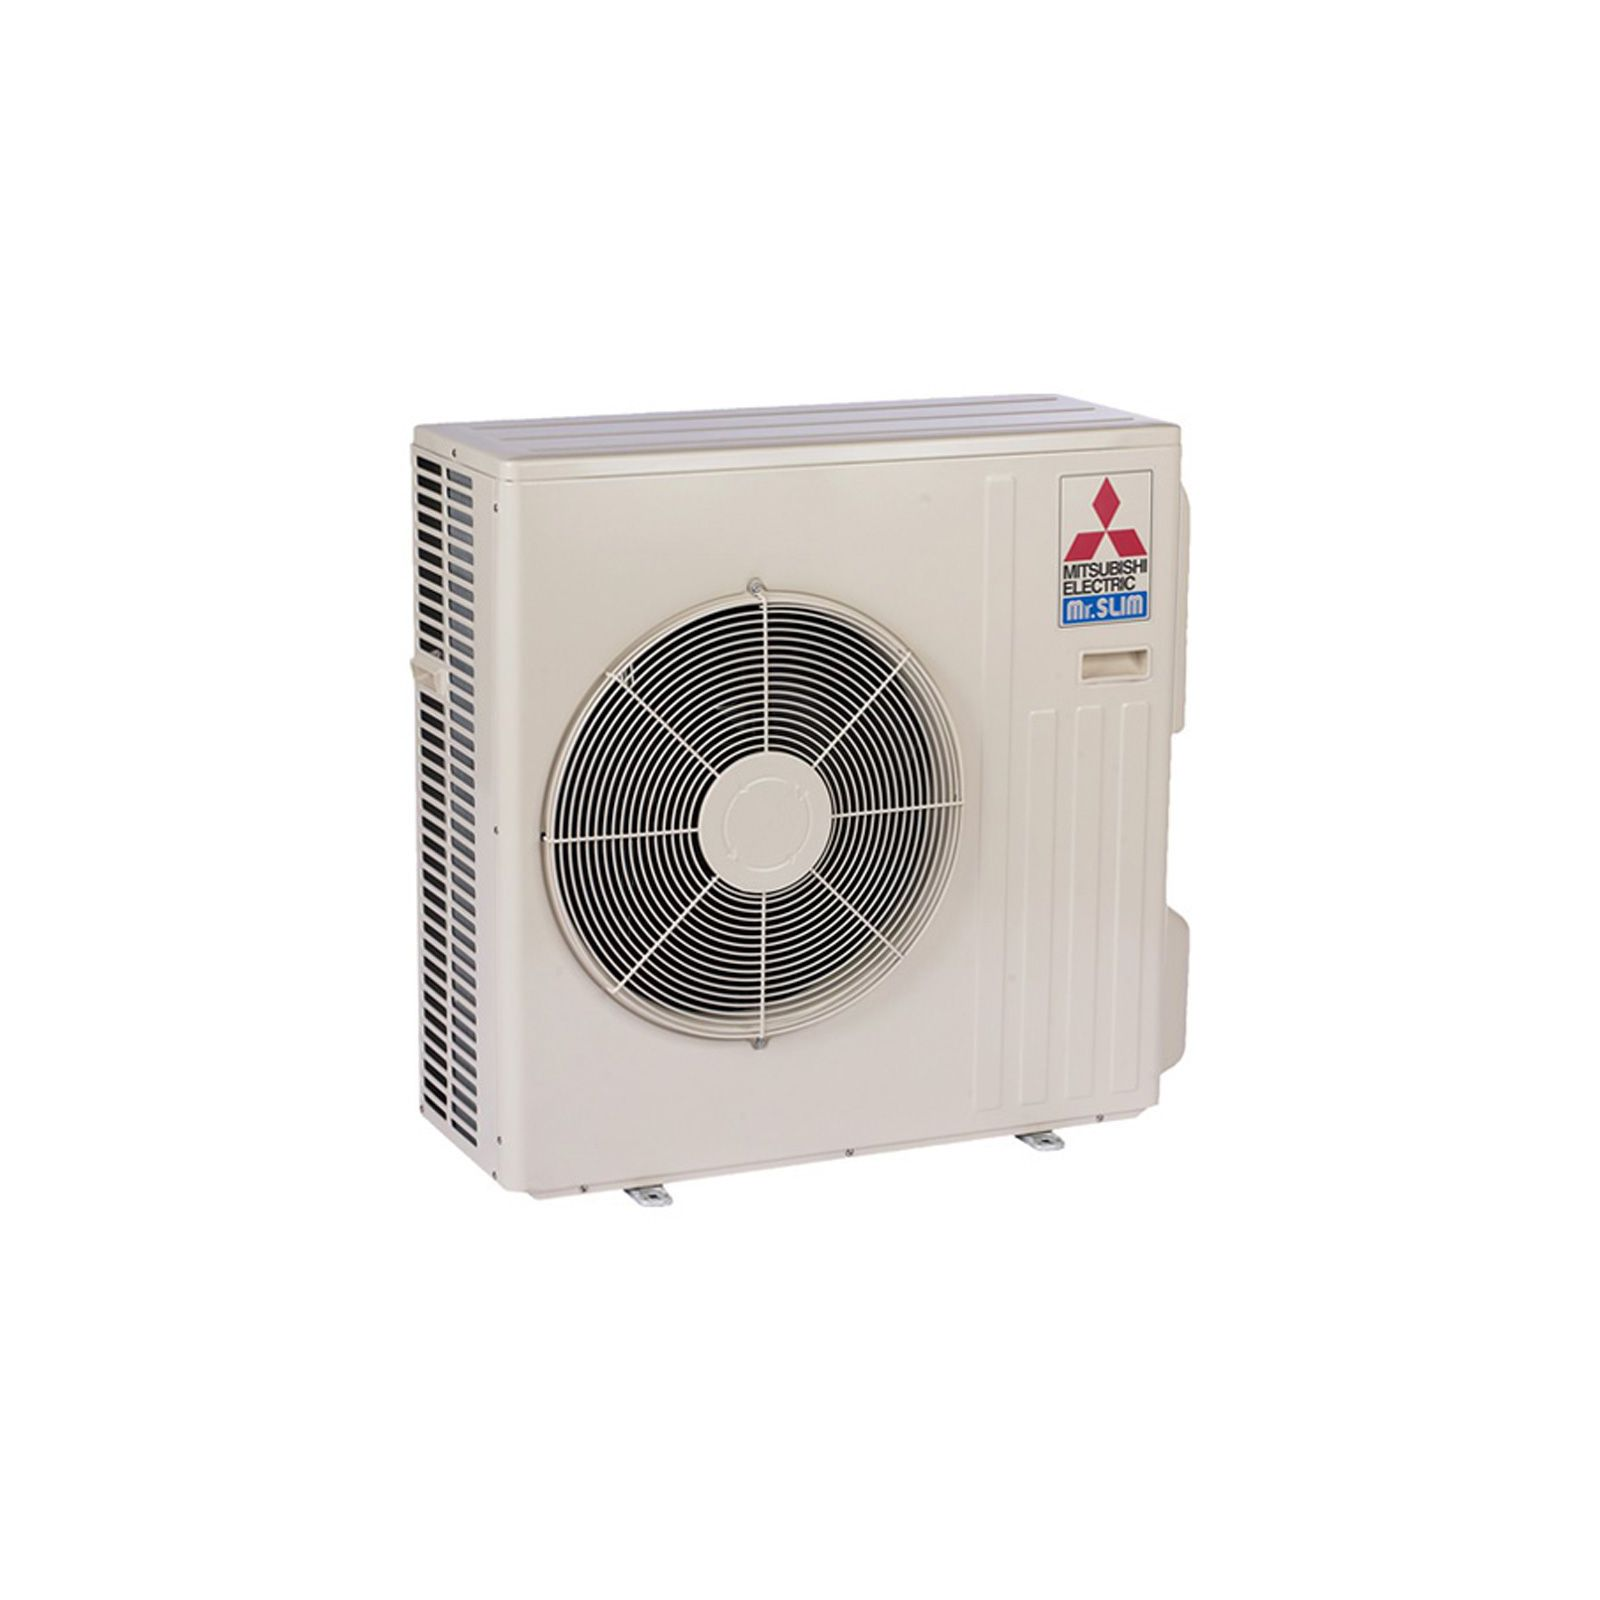 splits series hsinstmismsihd pump indoor ductless heat m installed p mitsubishi horizontal mini ducted split